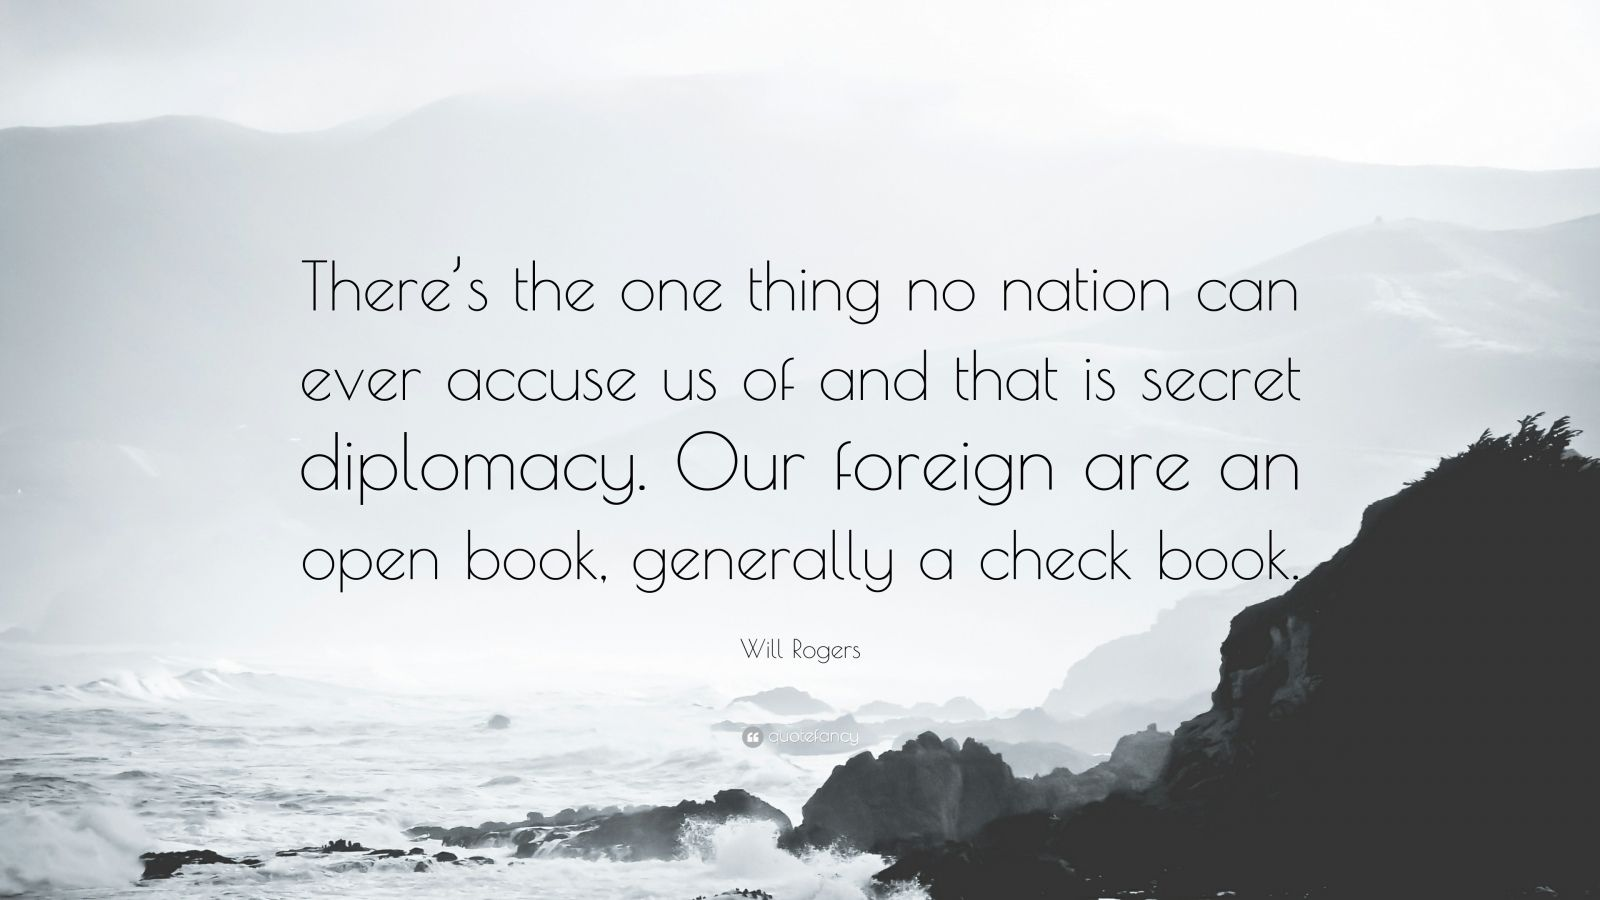 """Will Rogers Quote: """"There's the one thing no nation can ever accuse us of and that is secret diplomacy. Our foreign are an open book, generally a check book."""""""